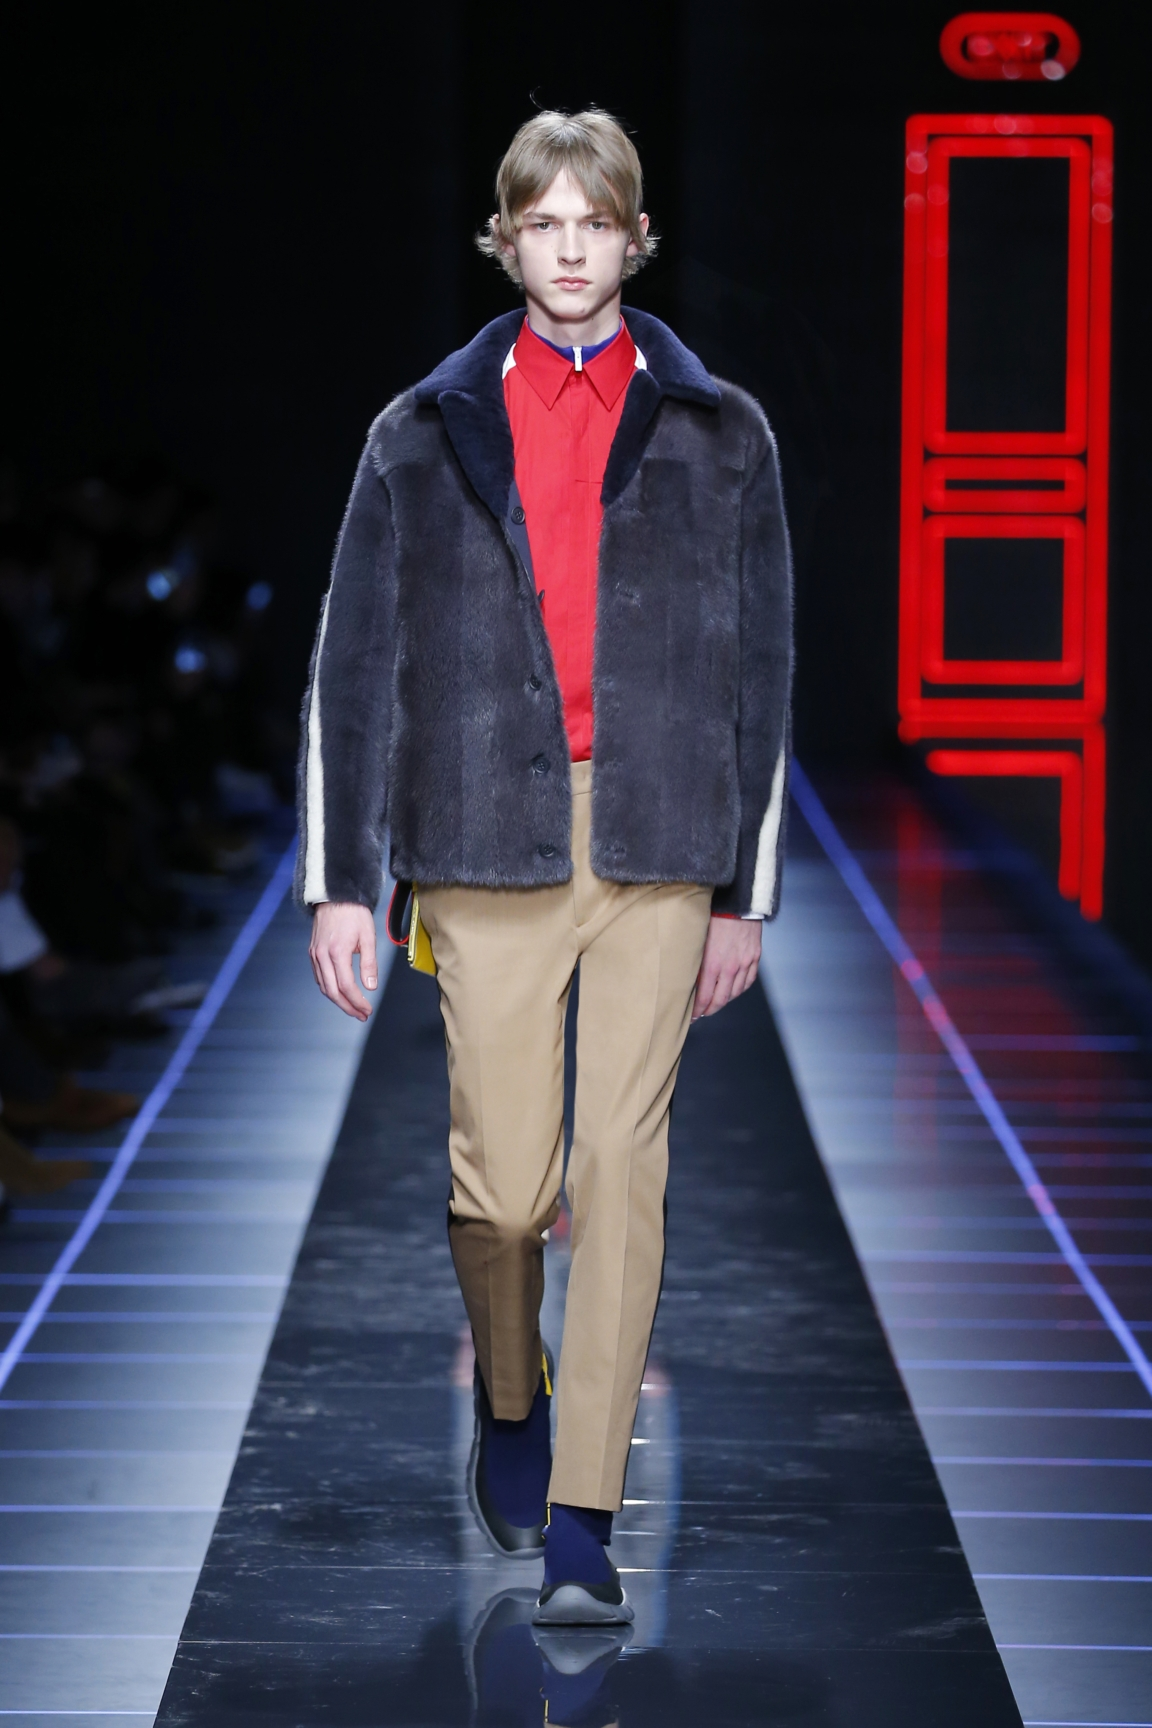 fendi-men-fw16-17-look-23